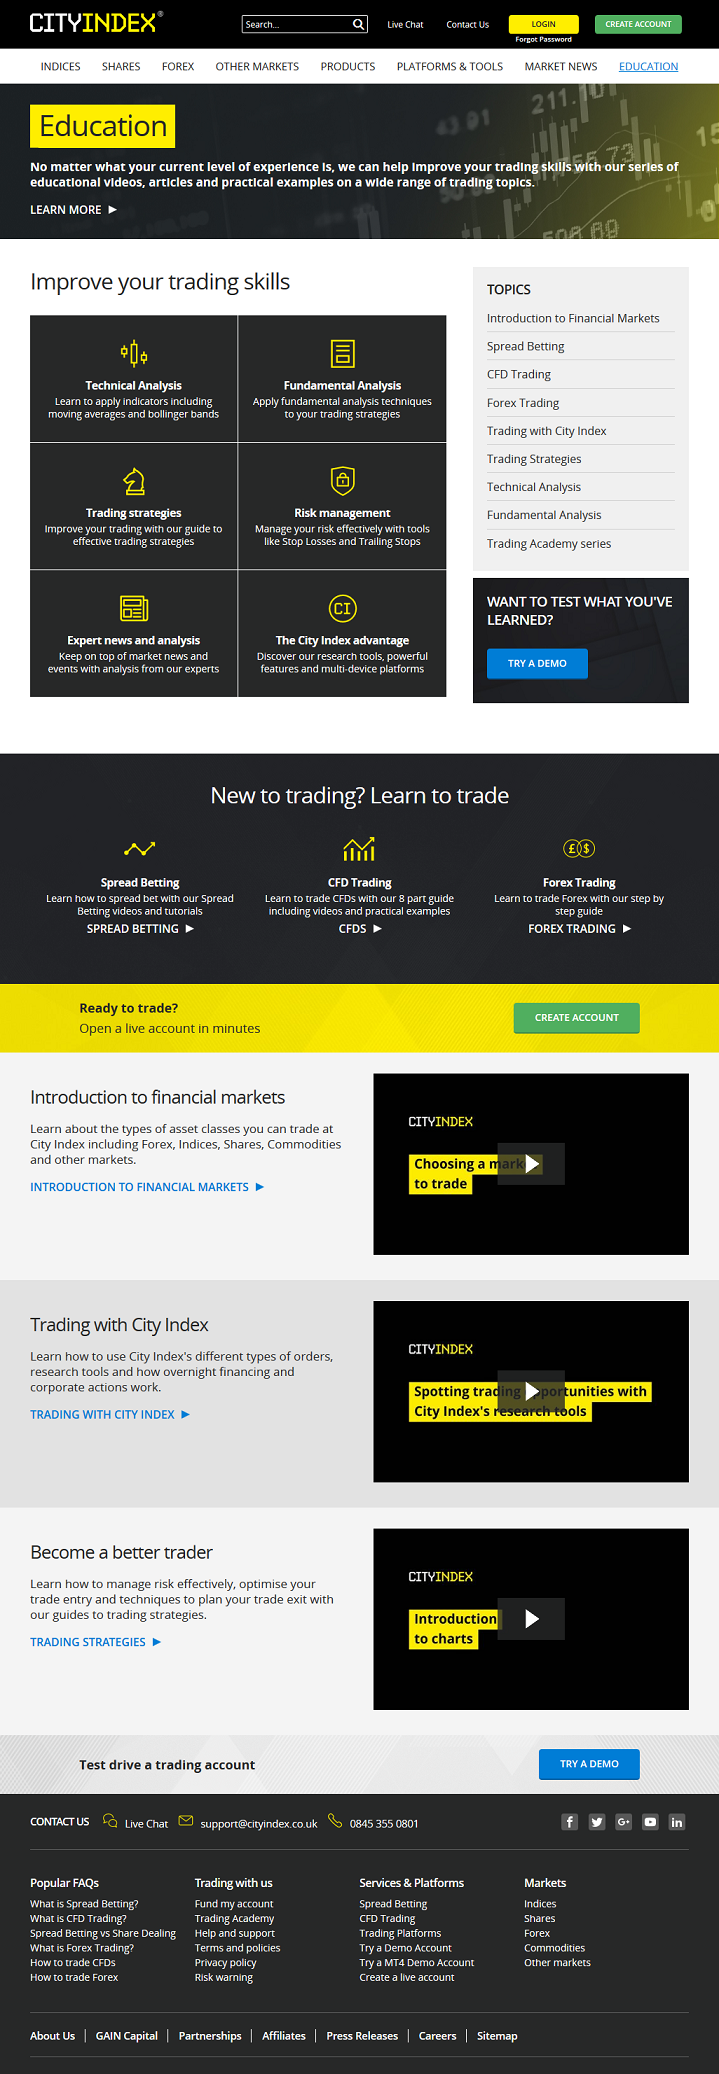 overview of education resources and tools available on a City Index brokerage account